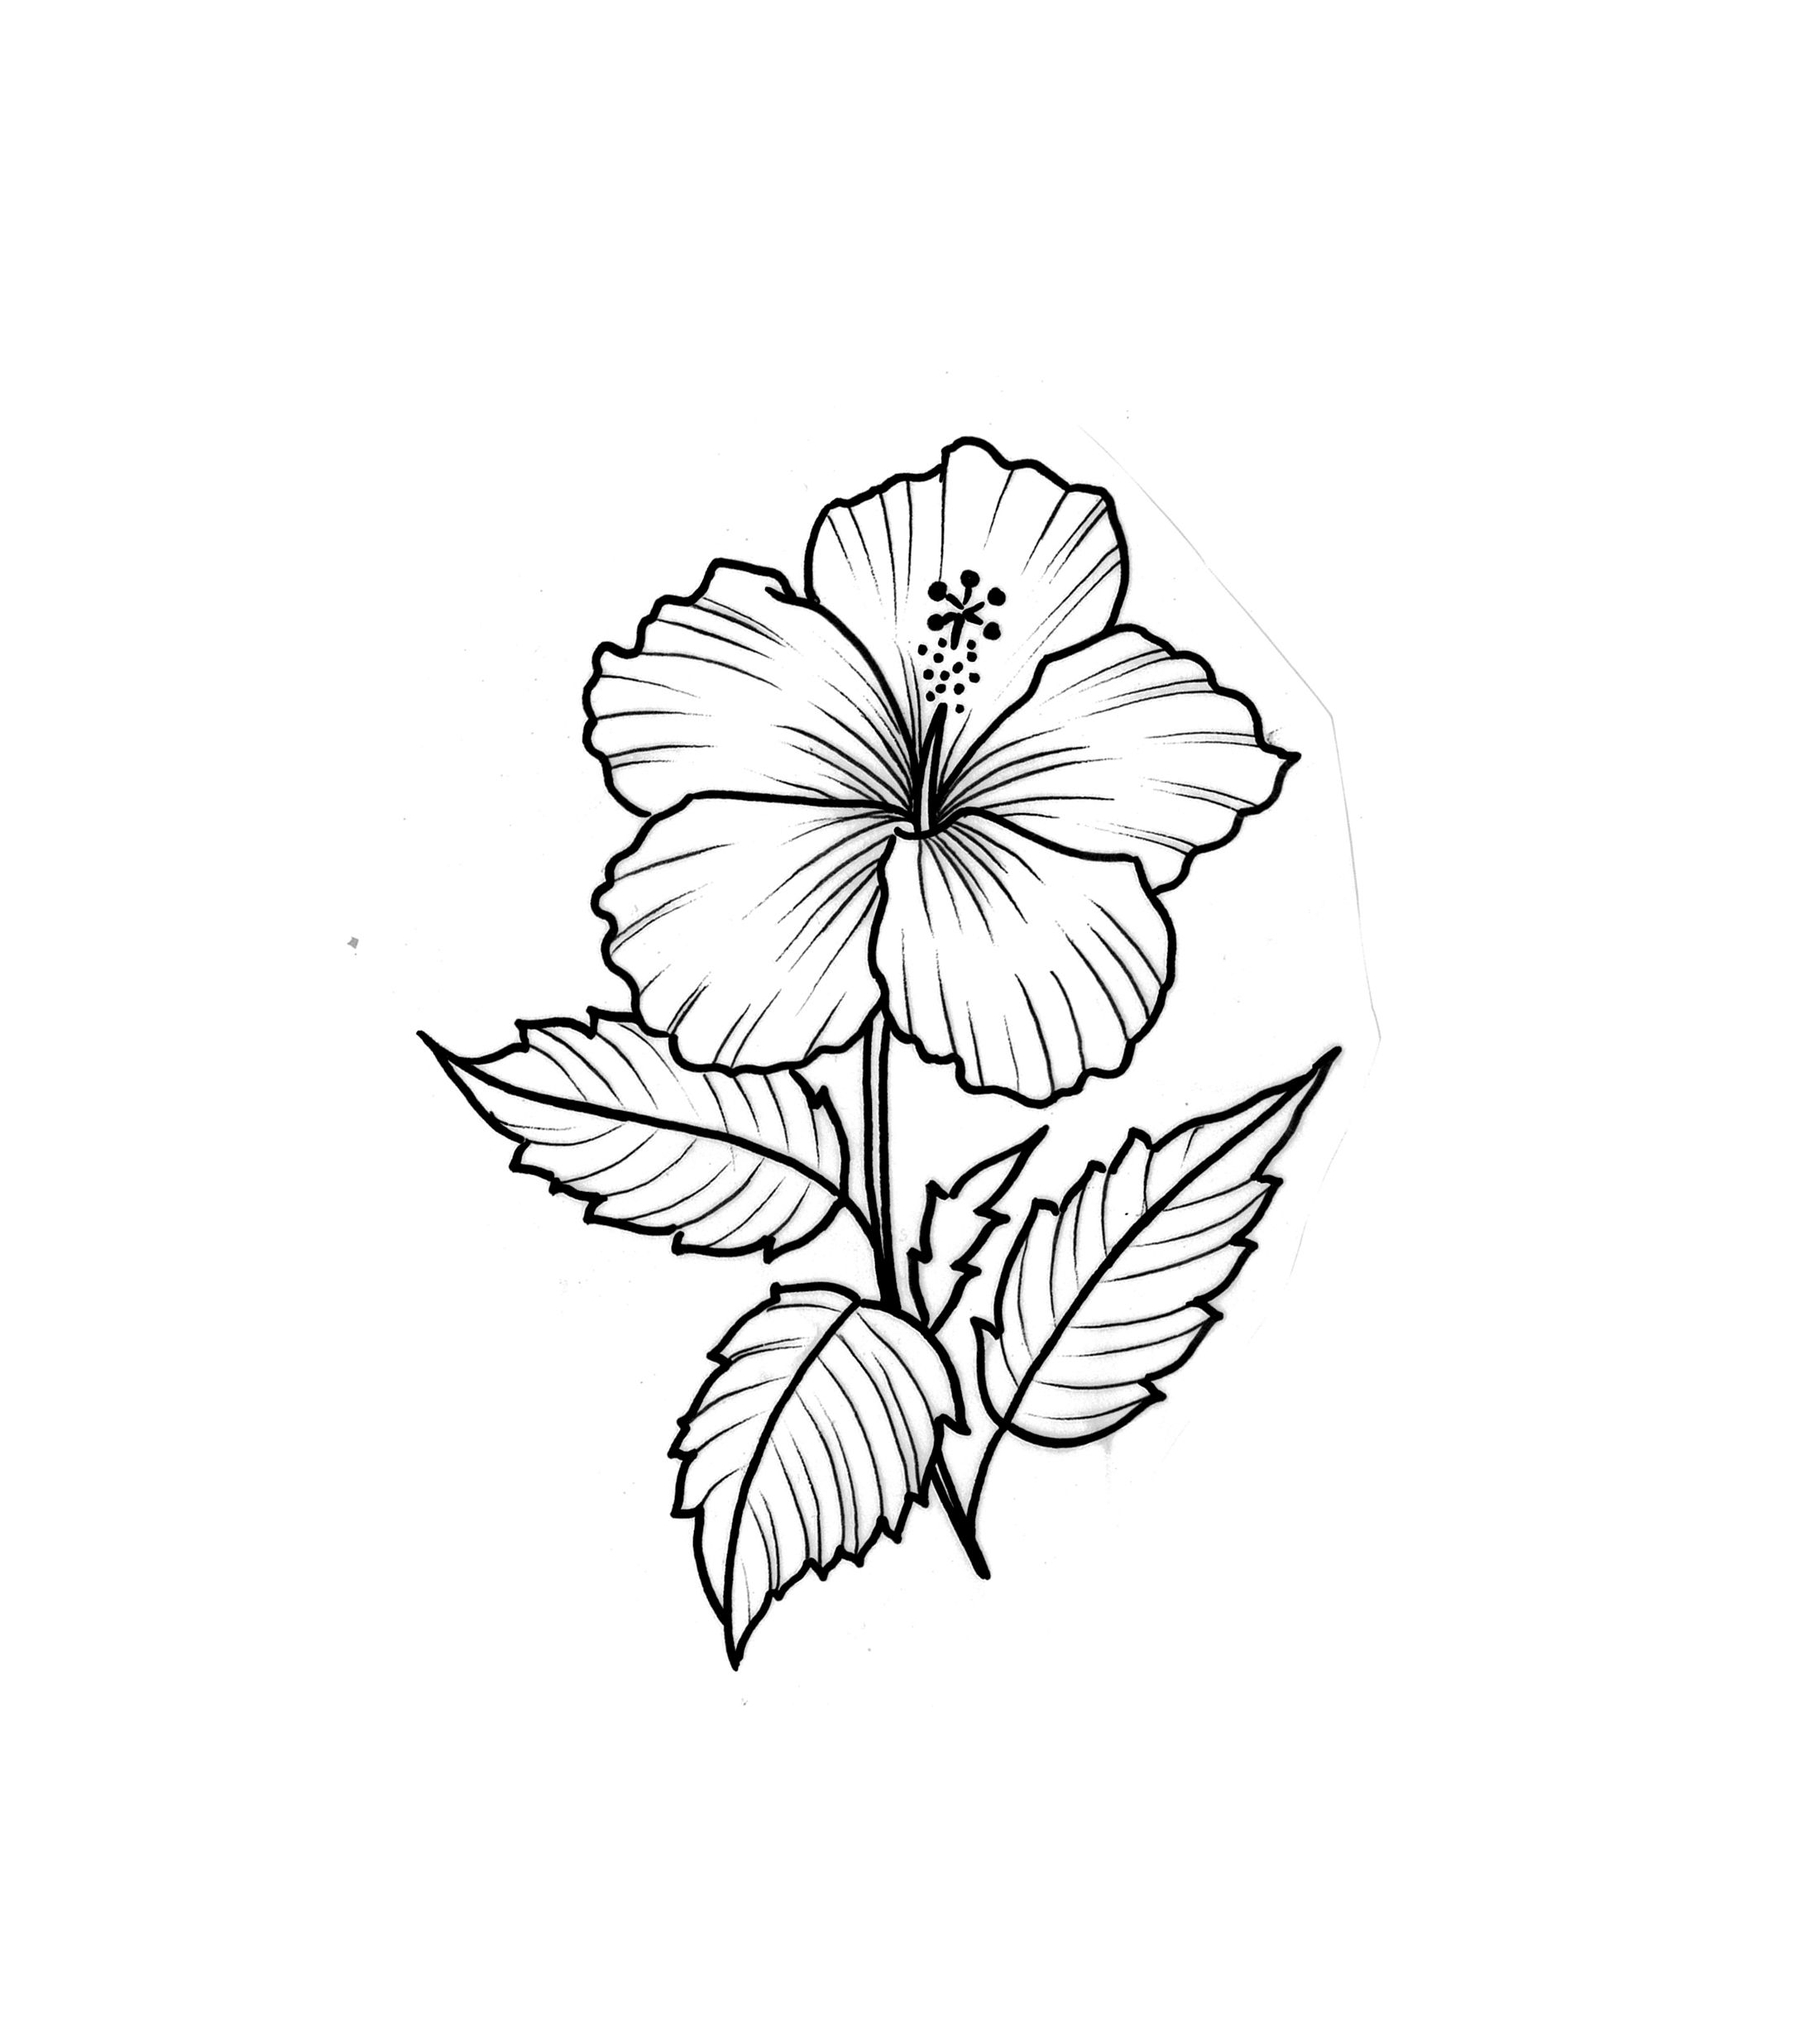 Hibiscus Flower Tattoo Flash Design Hibiscus Flower Tattoos Hibiscus Tattoo Flower Tattoo